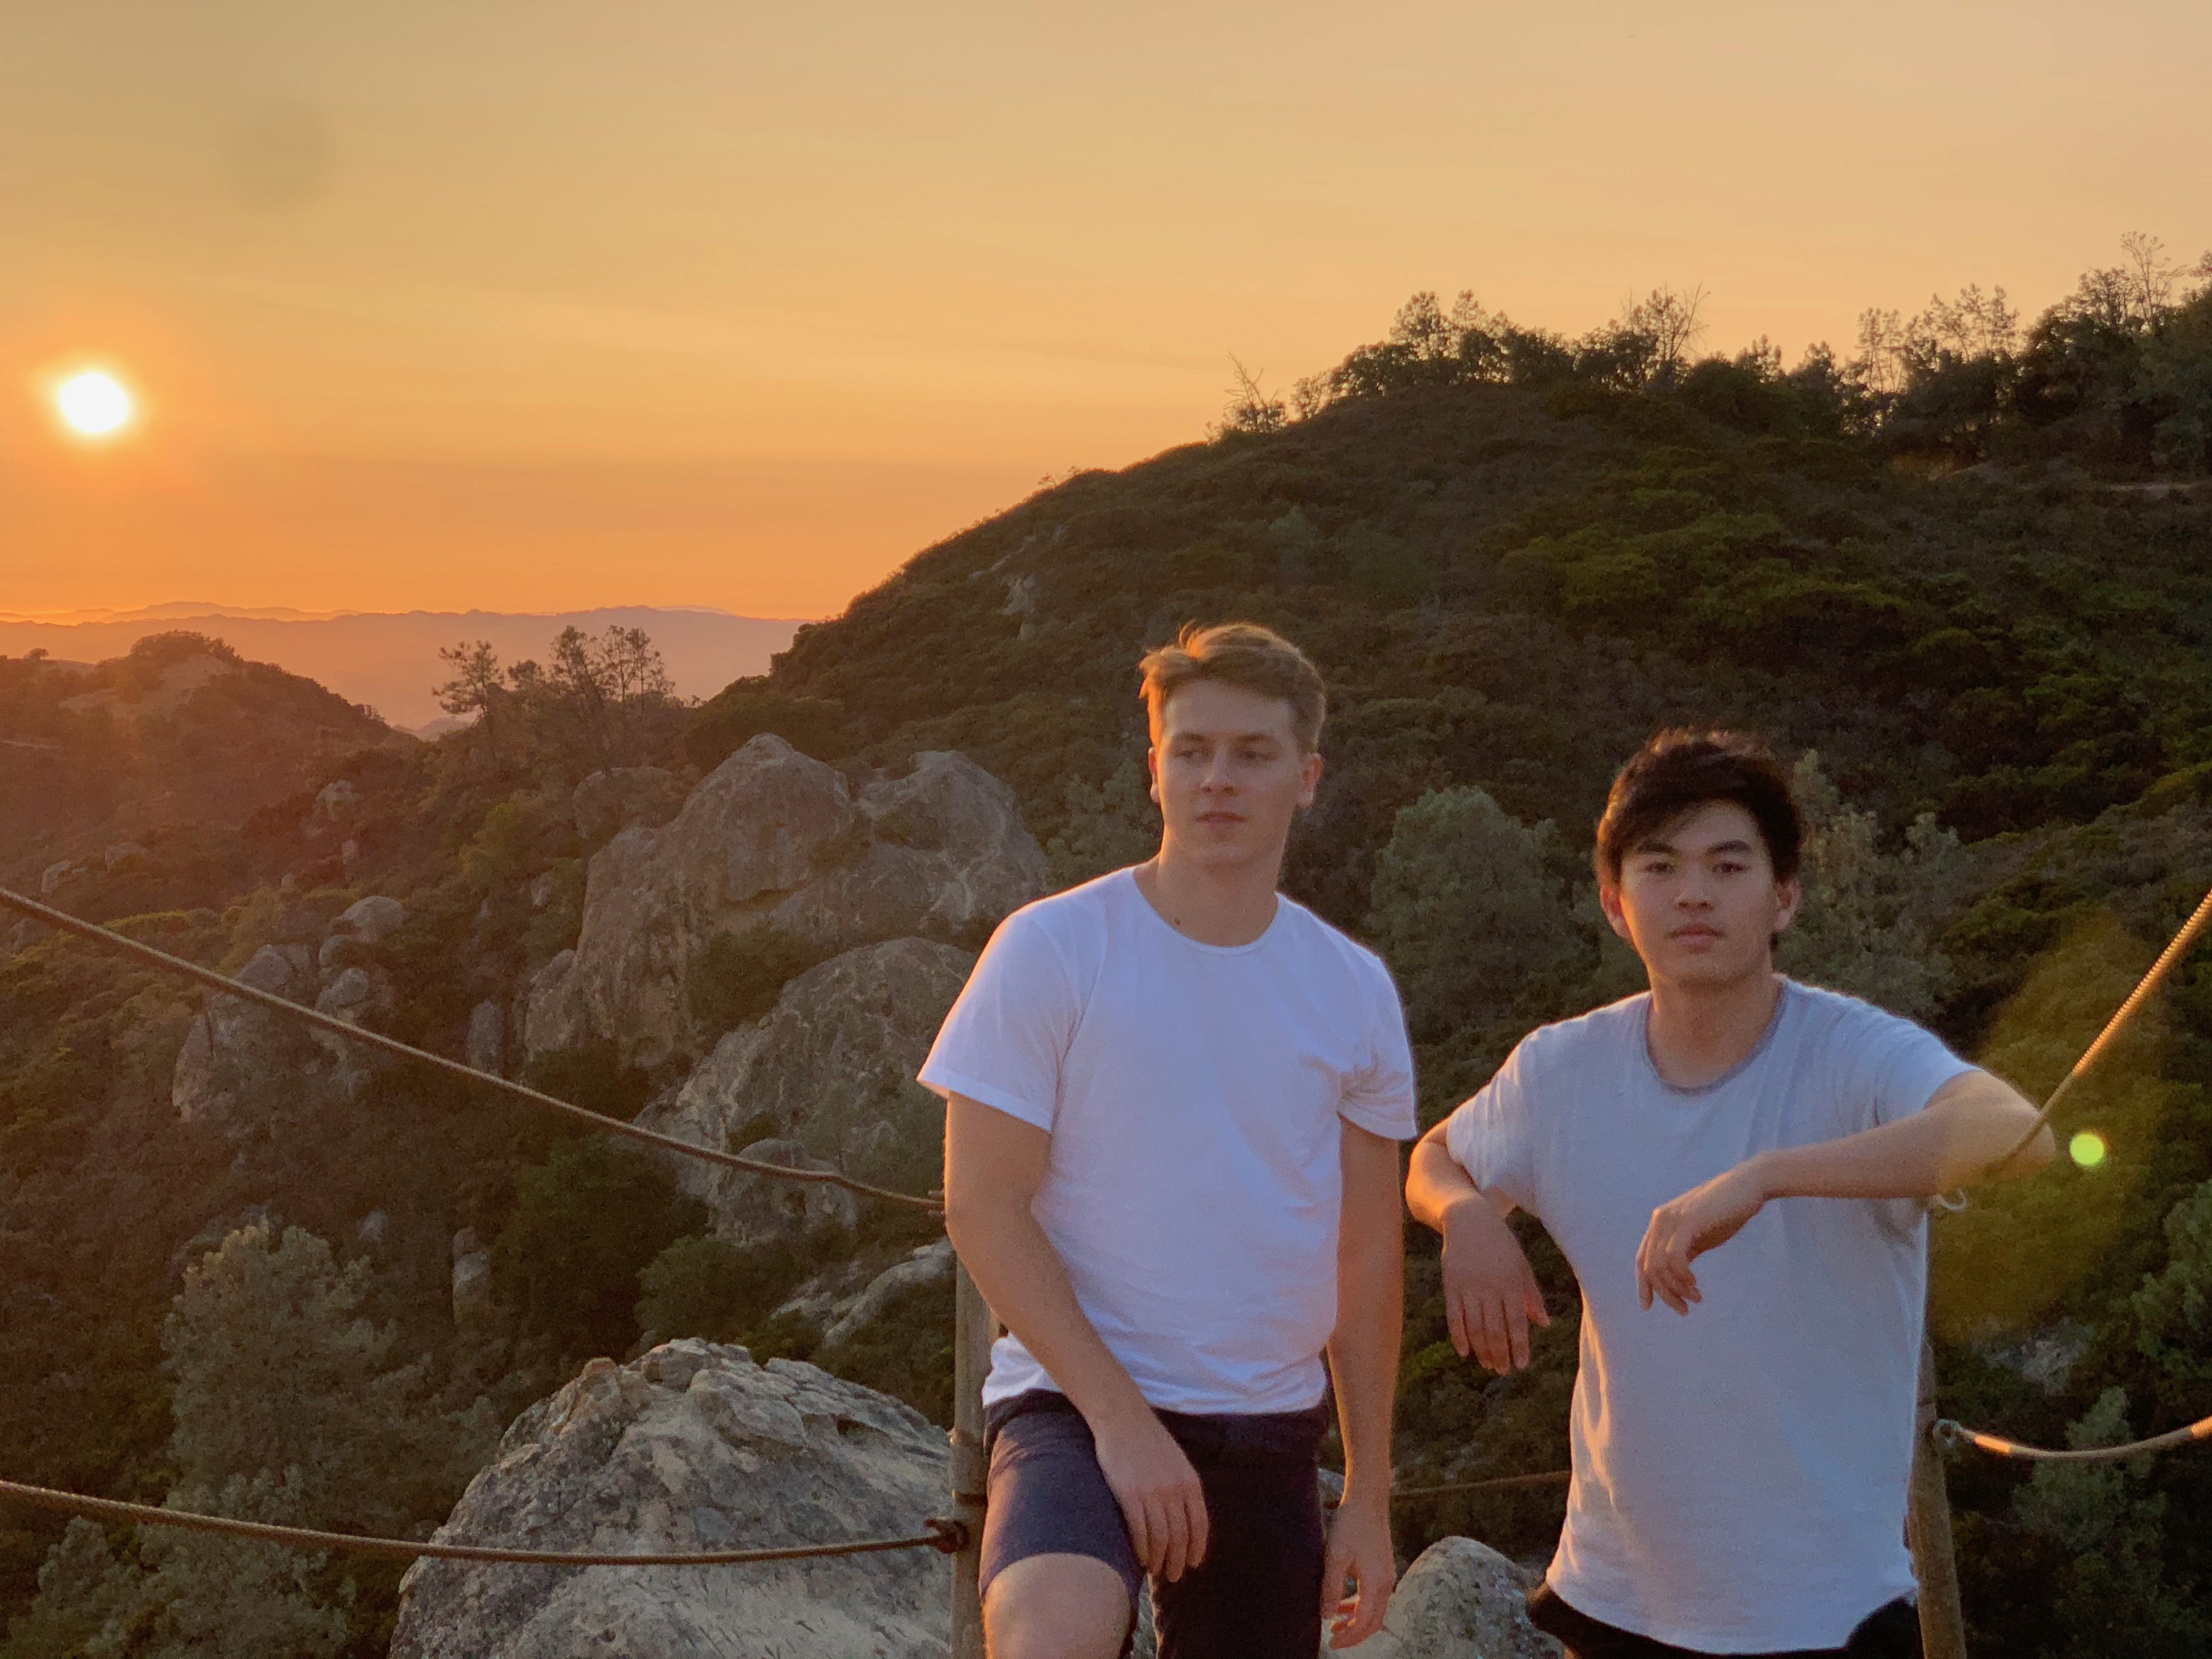 Cabana Health founders by sunset